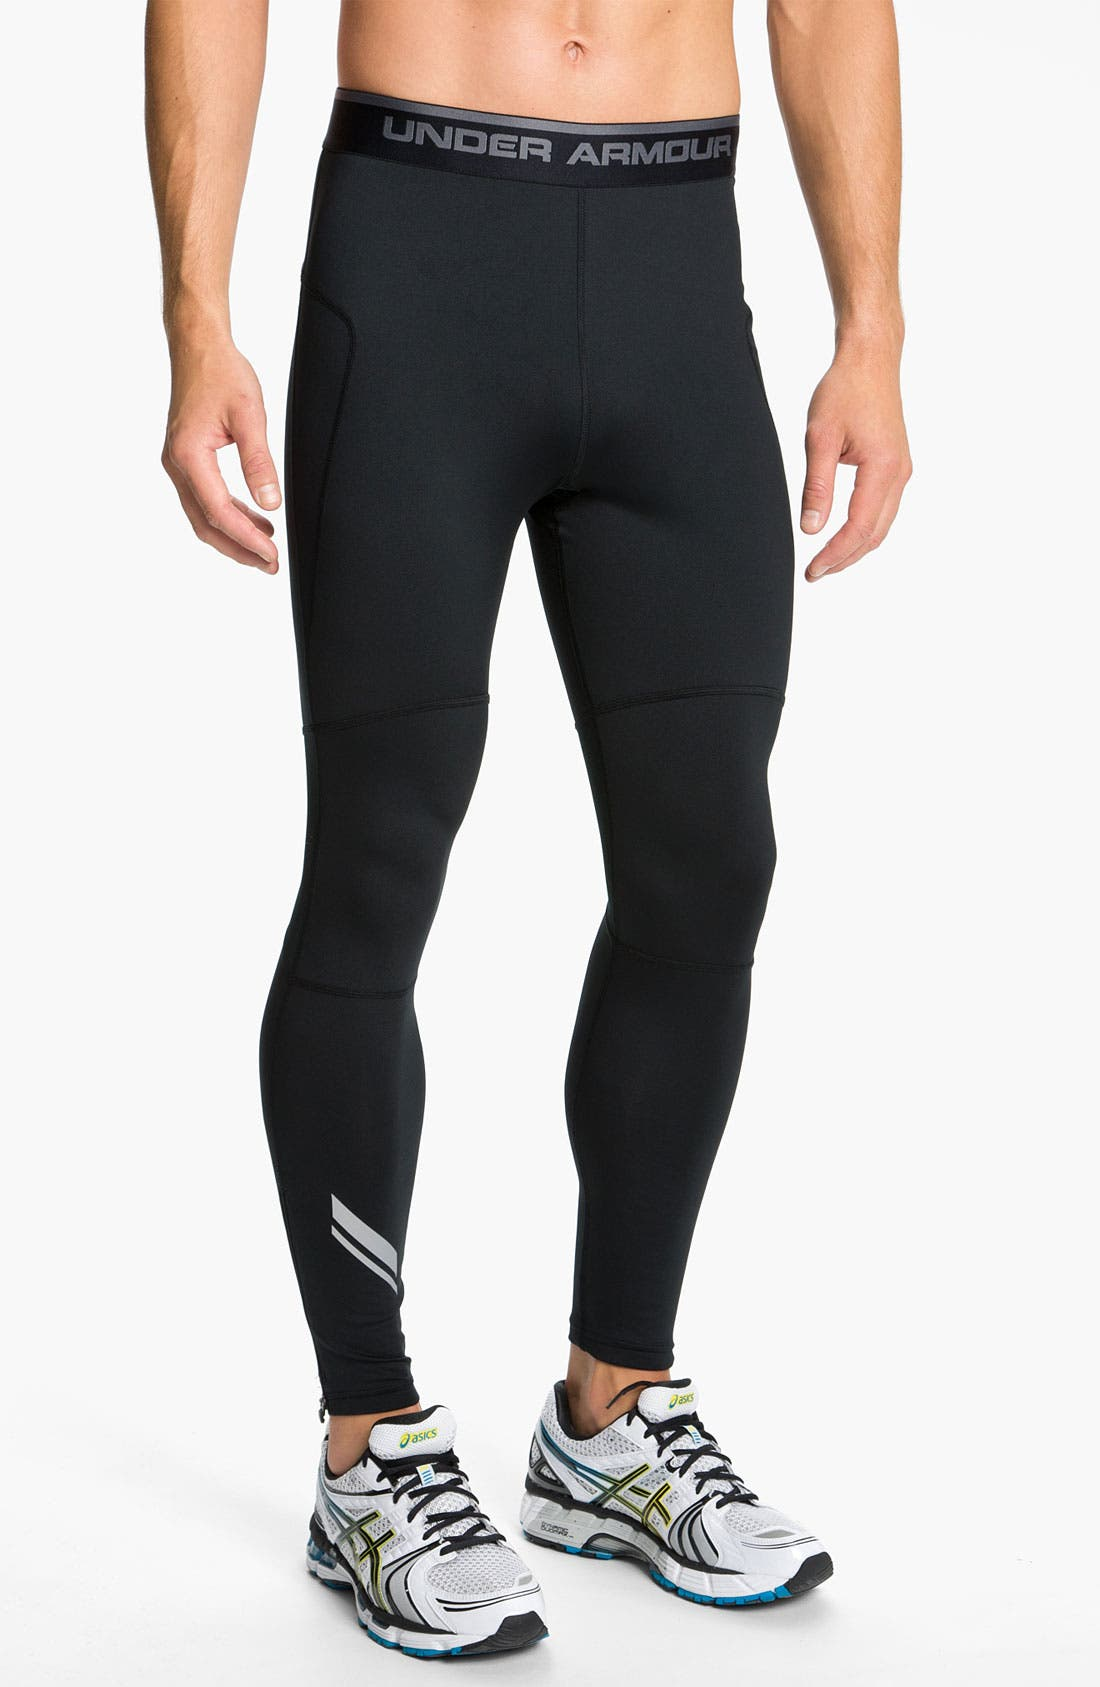 Main Image - Under Armour 'Run' ColdGear® Running Leggings (Online Exclusive)